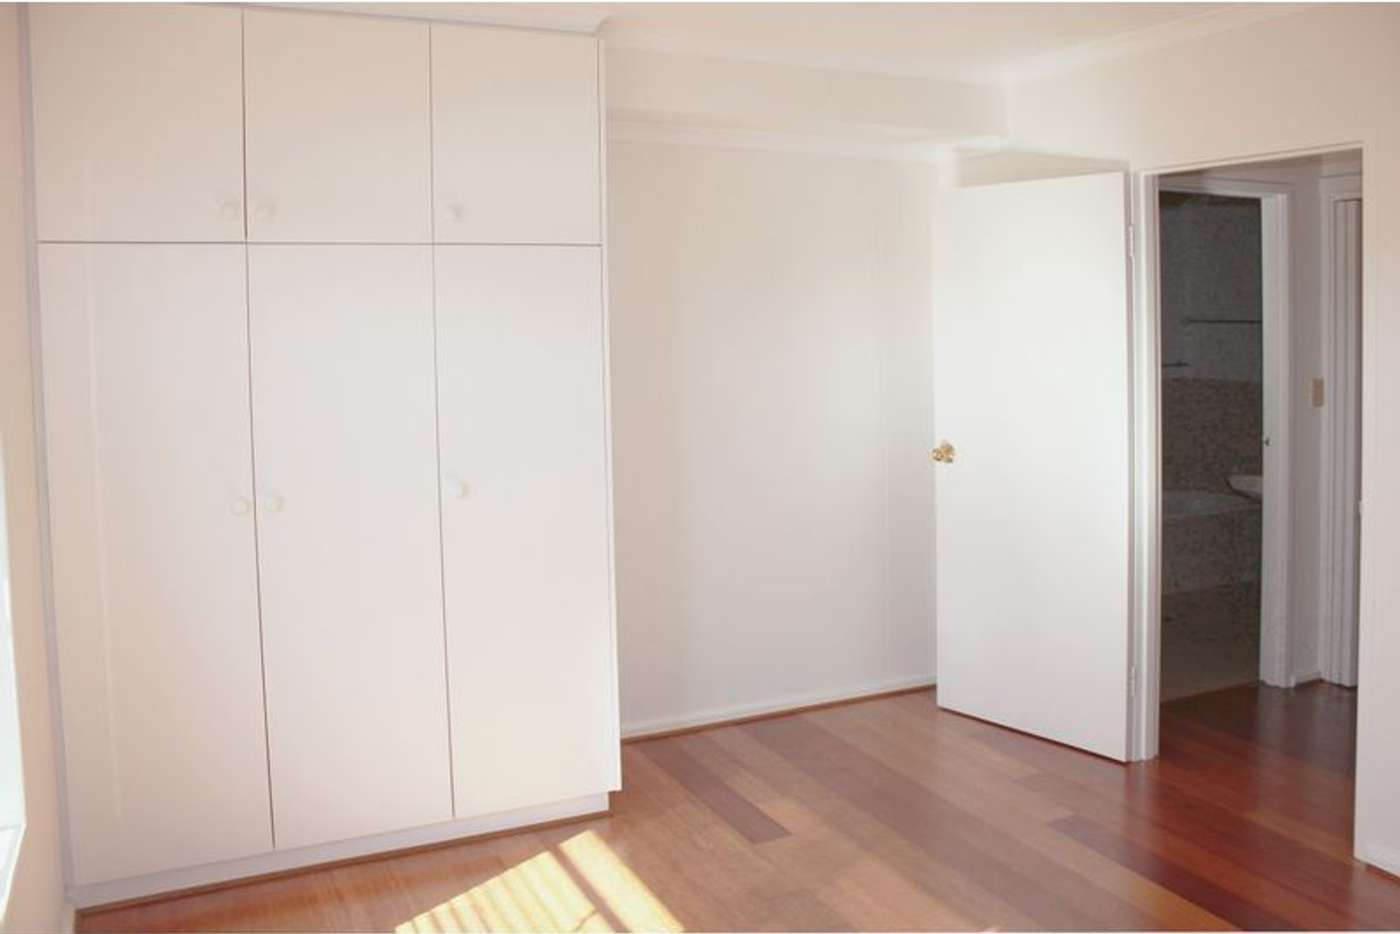 Seventh view of Homely apartment listing, 16/12-26 Willcox Street, Adelaide SA 5000